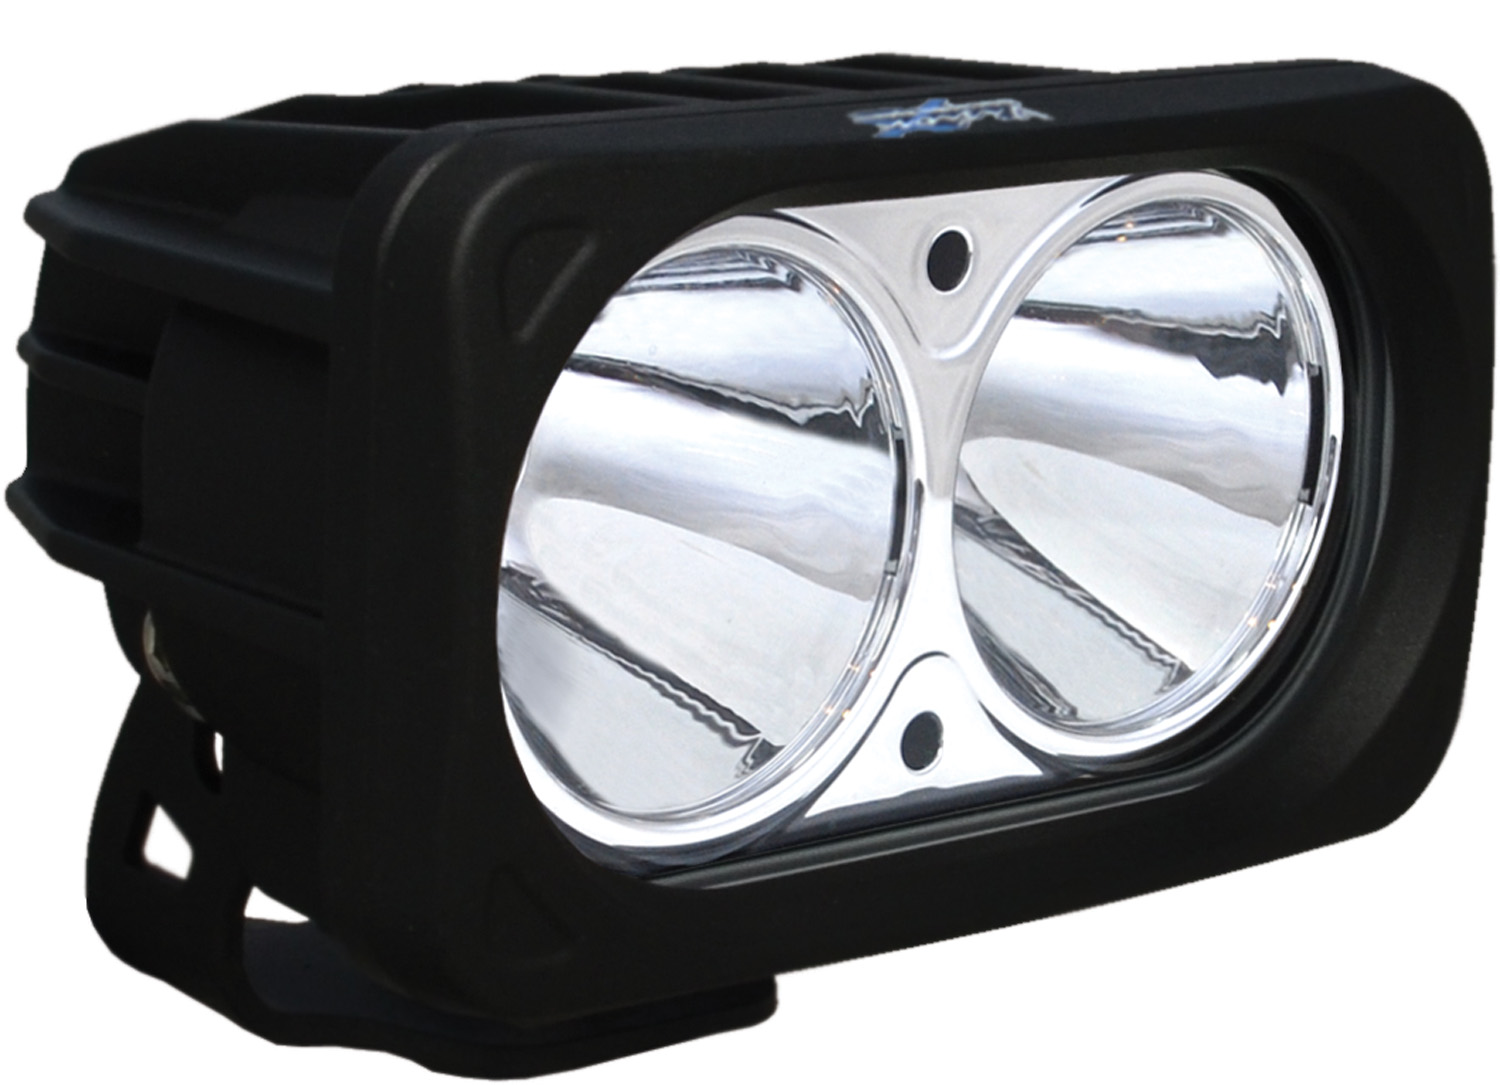 OPTIMUS SERIES PRIME TWO 10W LEDS LIGHT 60°